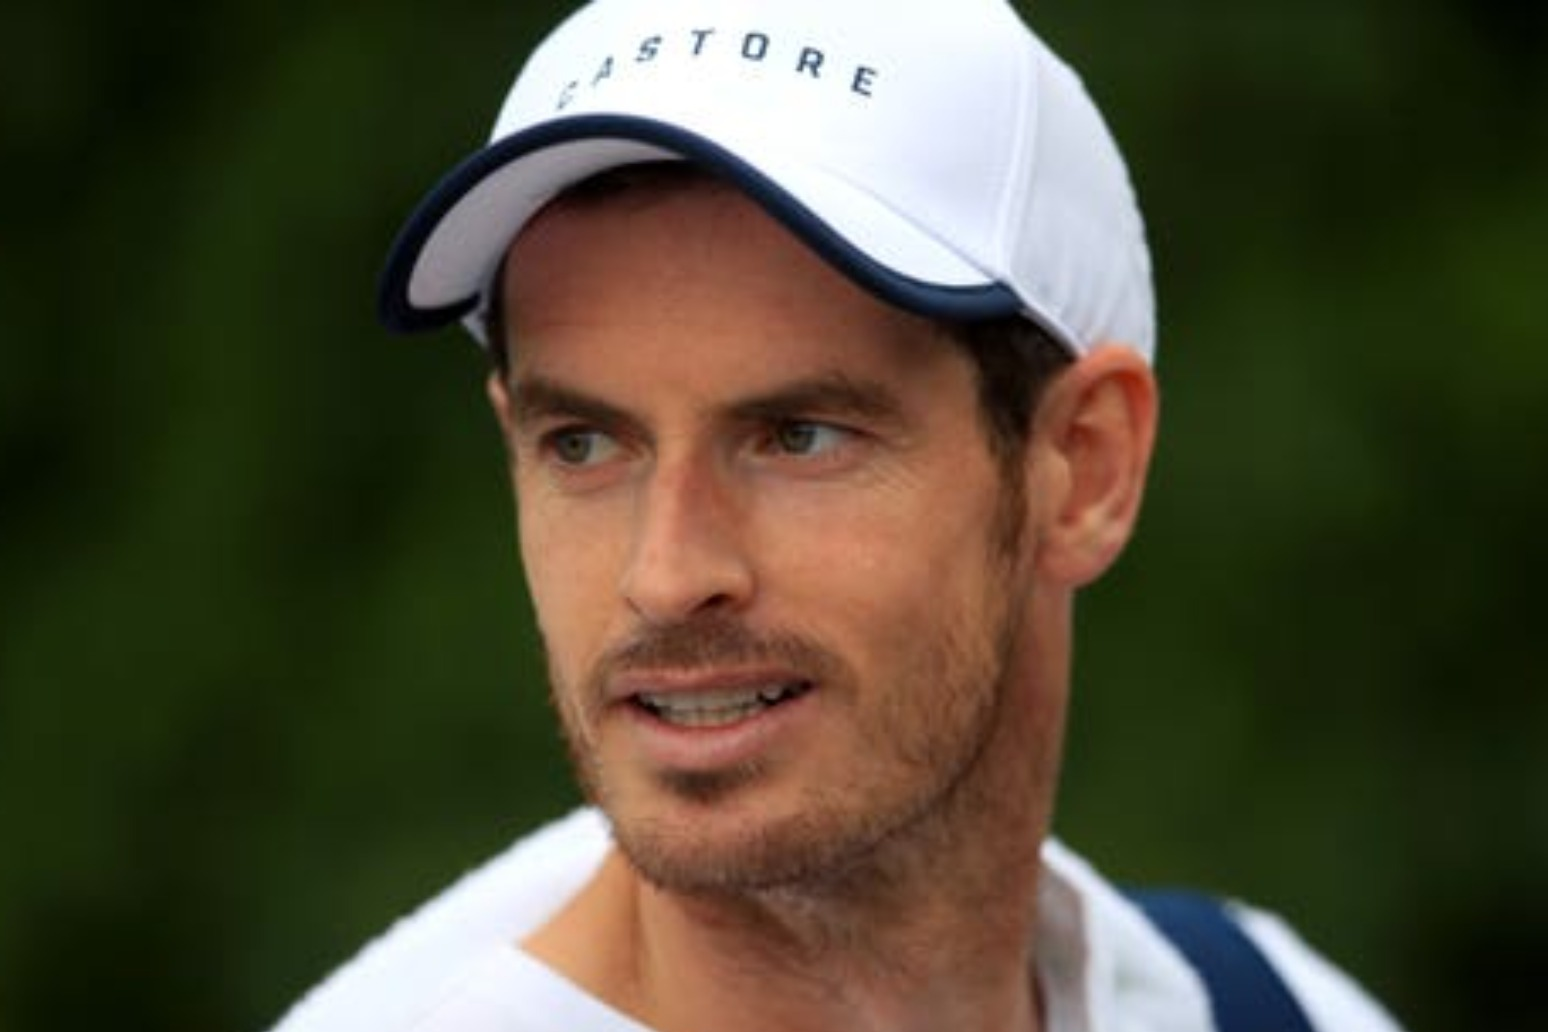 Andy Murray Australian Open appearance in doubt after positive test for Covid